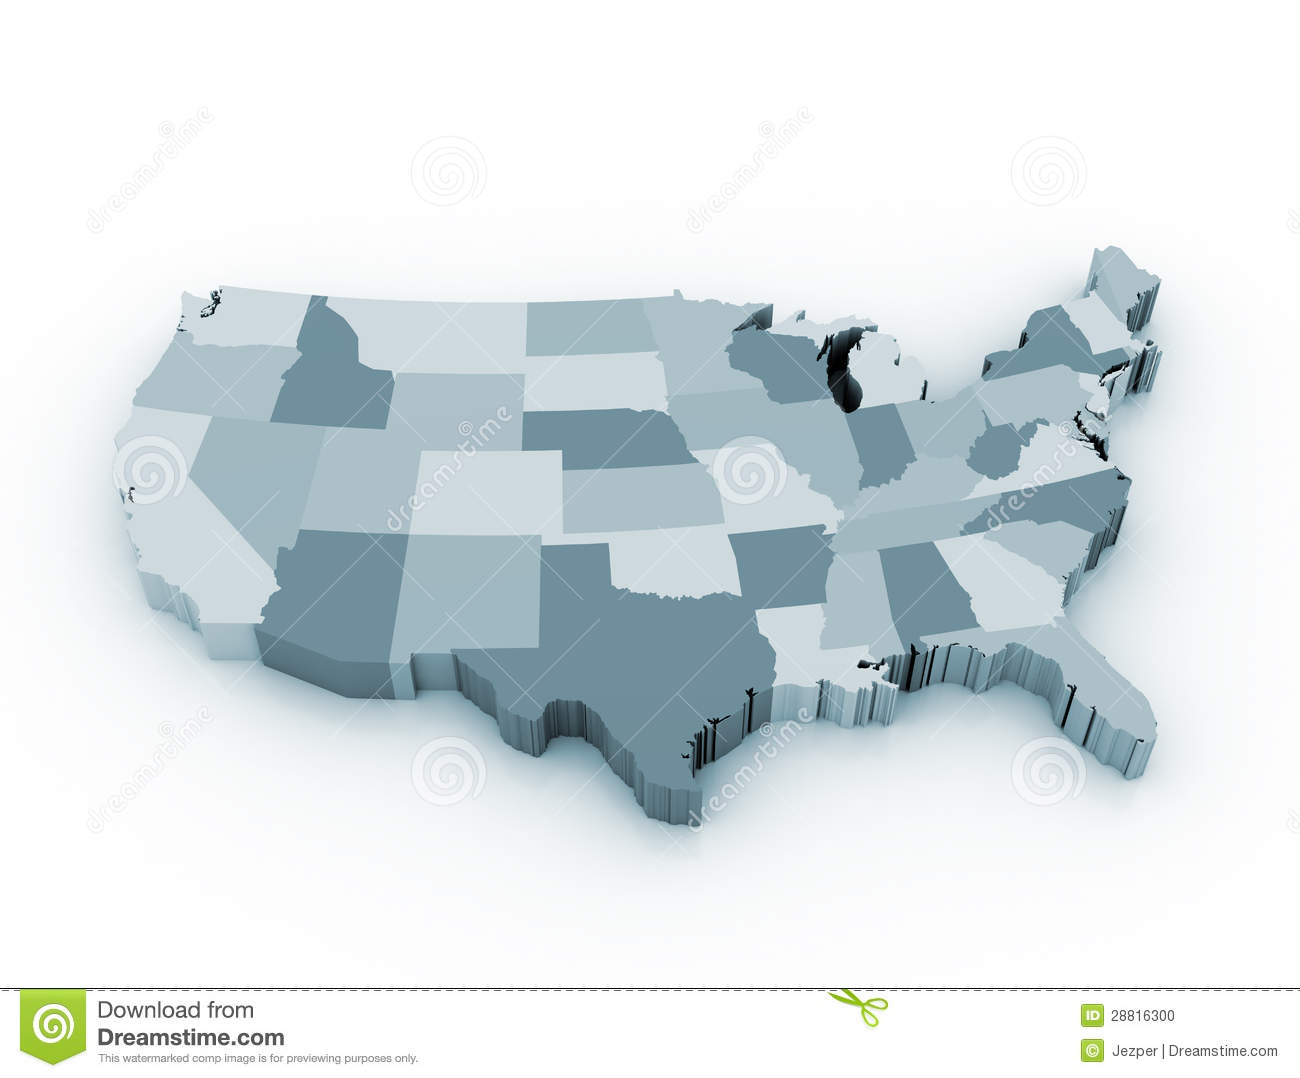 D Us Map Stock Images RoyaltyFree Images Vectors Shutterstock - 40x60 us maps